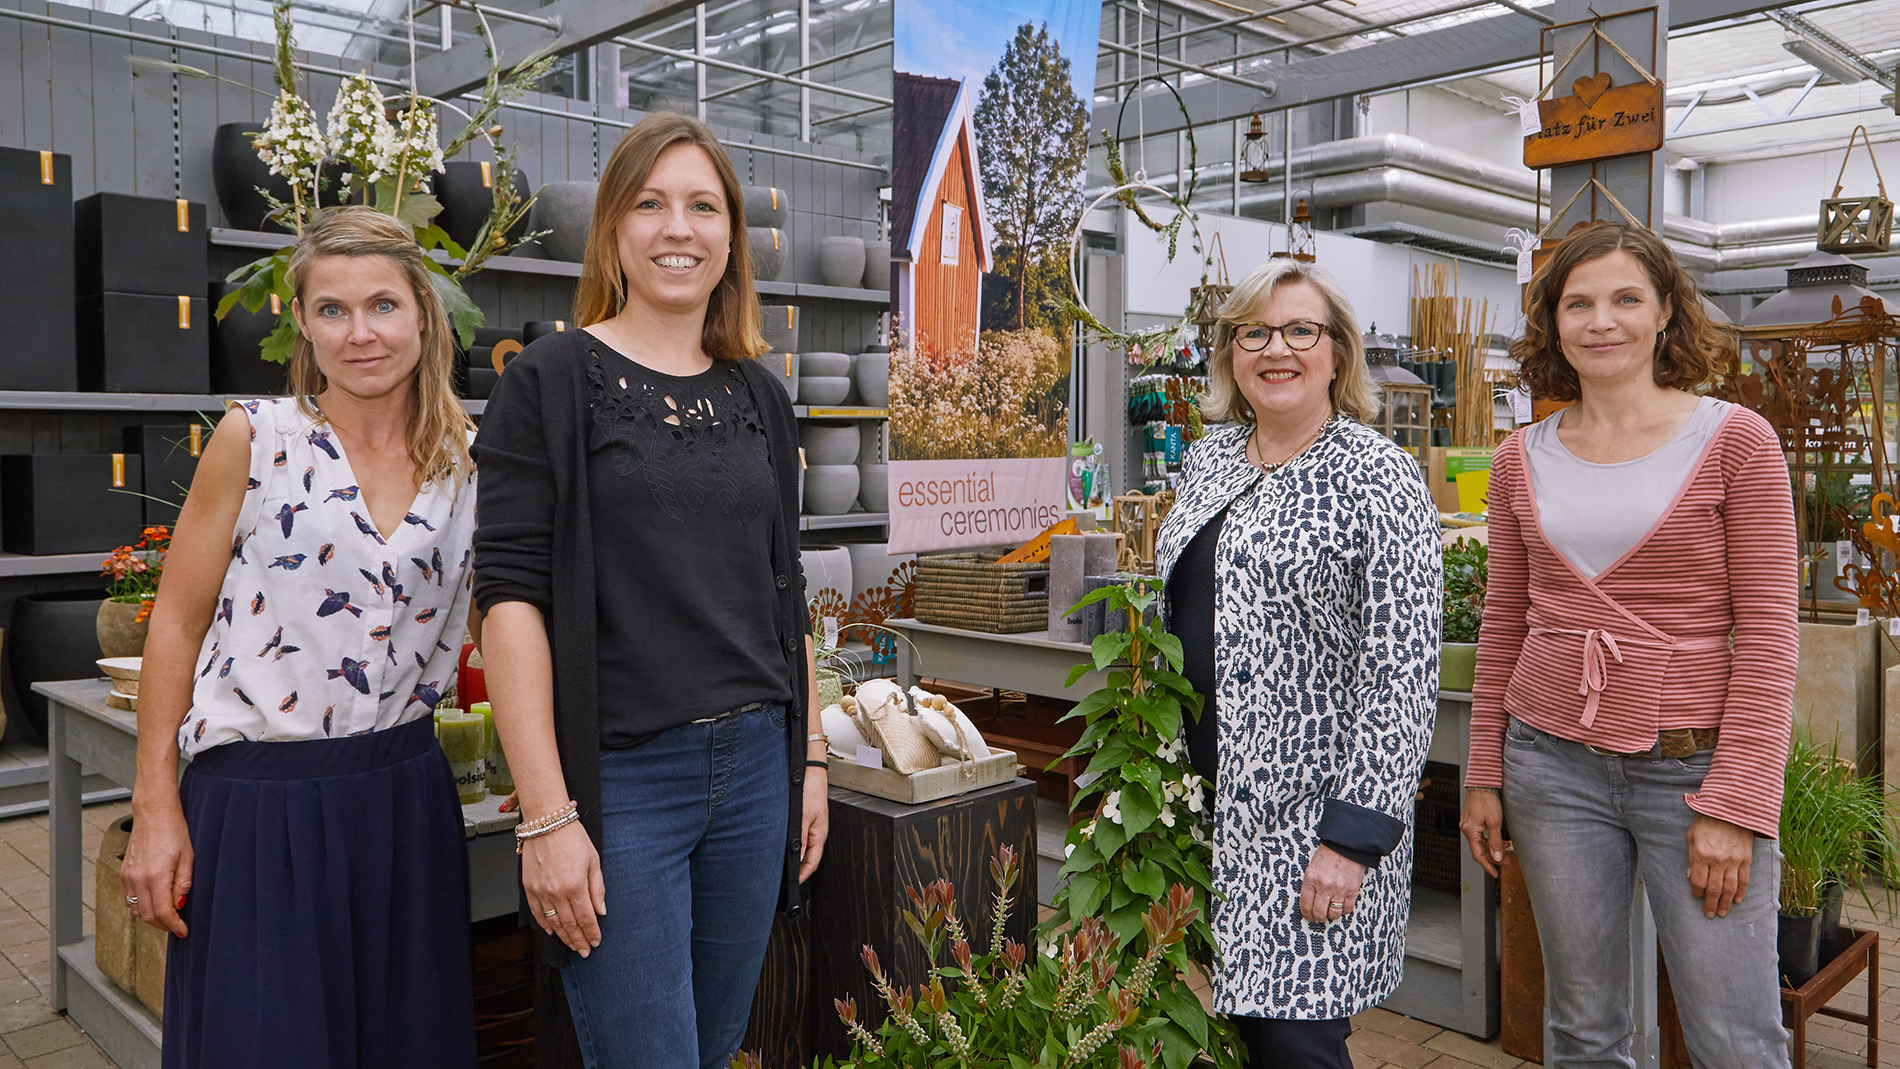 from left to right: Julia Nawra (Consultant in Visual Marketing and Decoration at  Thierfelder-Nawra GbR), Sarah Bronner-Müller (Managing Director of the garden centre), Eva Olbrich (Christmasworld Director) and Stefanie Thierfelder (Consultant for Visual Marketing and Decoration at  Thierfelder-Nawra GbR)